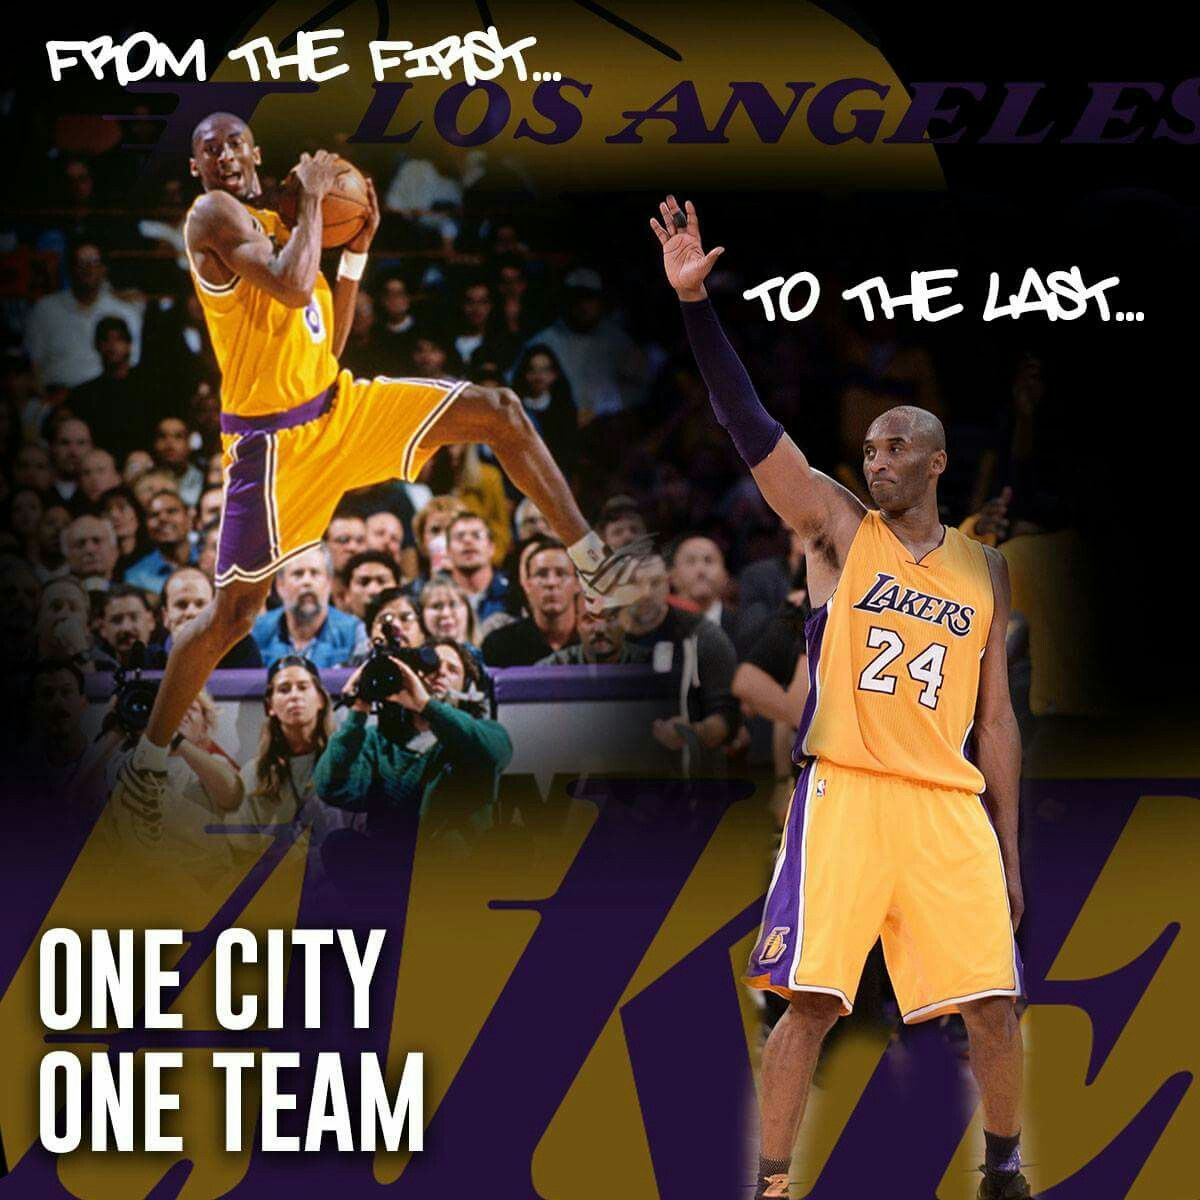 Pin by Hector Moran Quinonez on Kobe 24 (With images